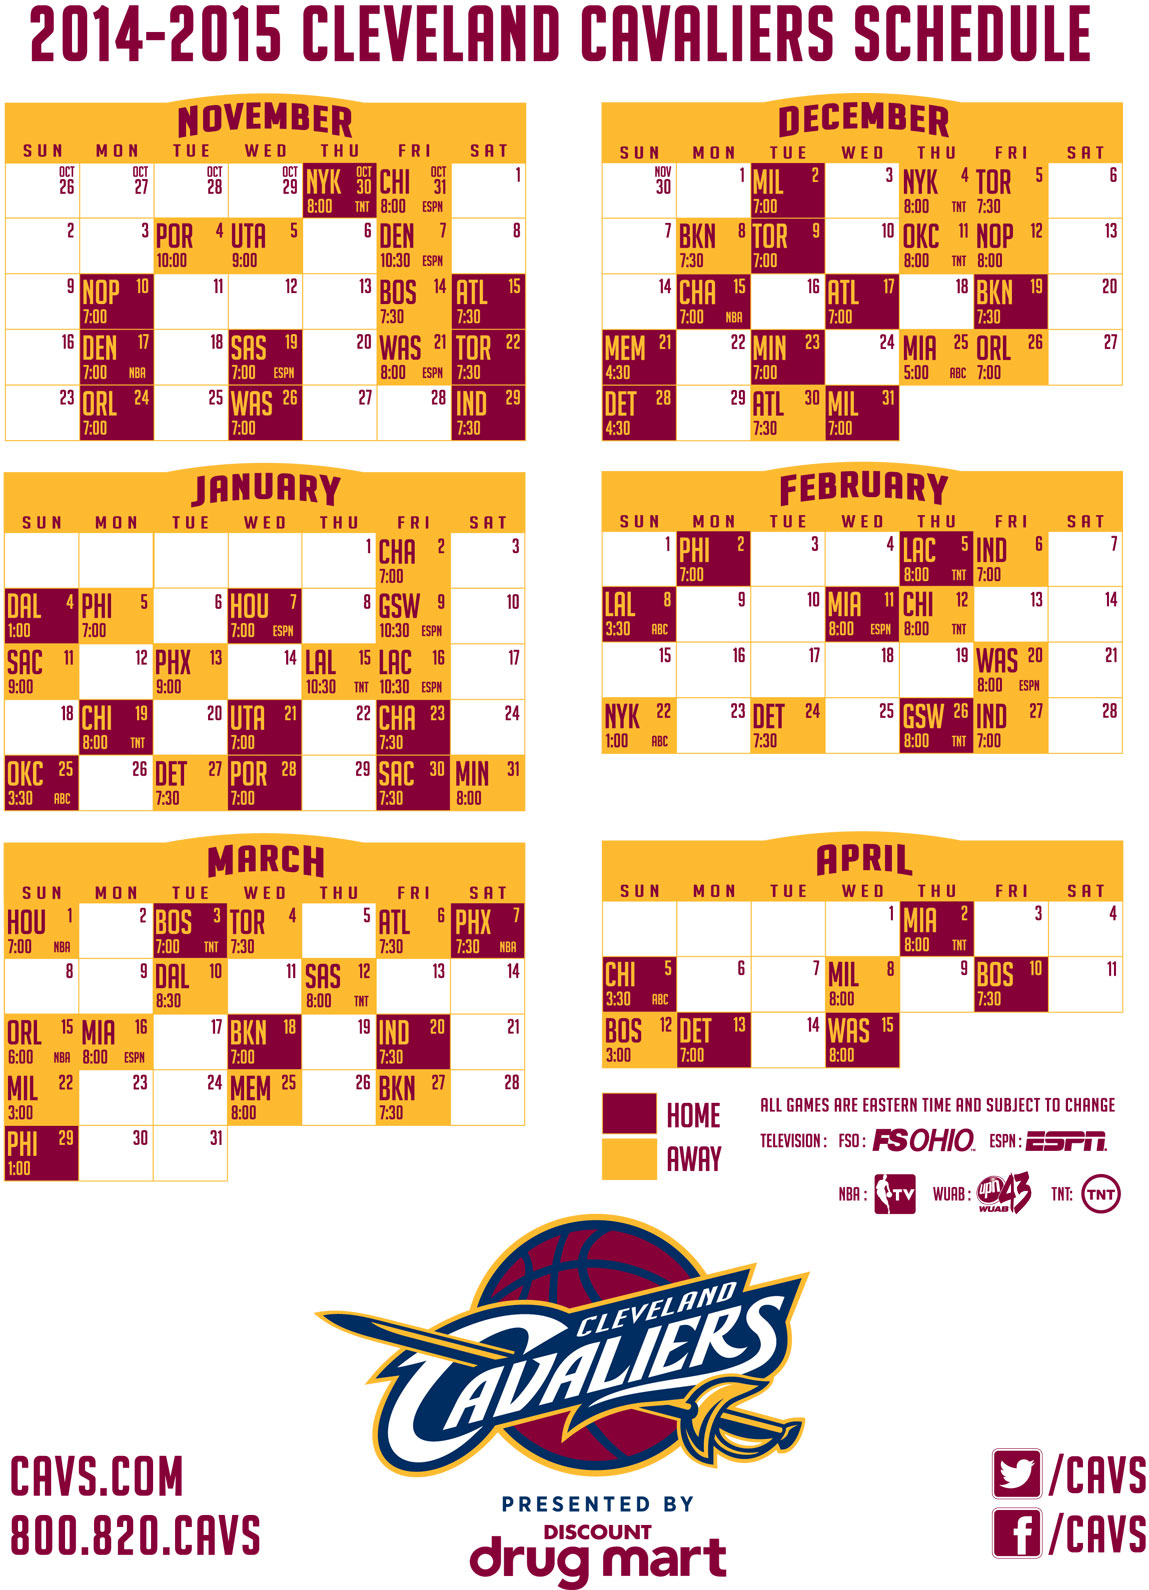 photo about Cavs Printable Schedule referred to as 2014-15 Cleveland Cavaliers Plan - WEOL Radio 930 AM